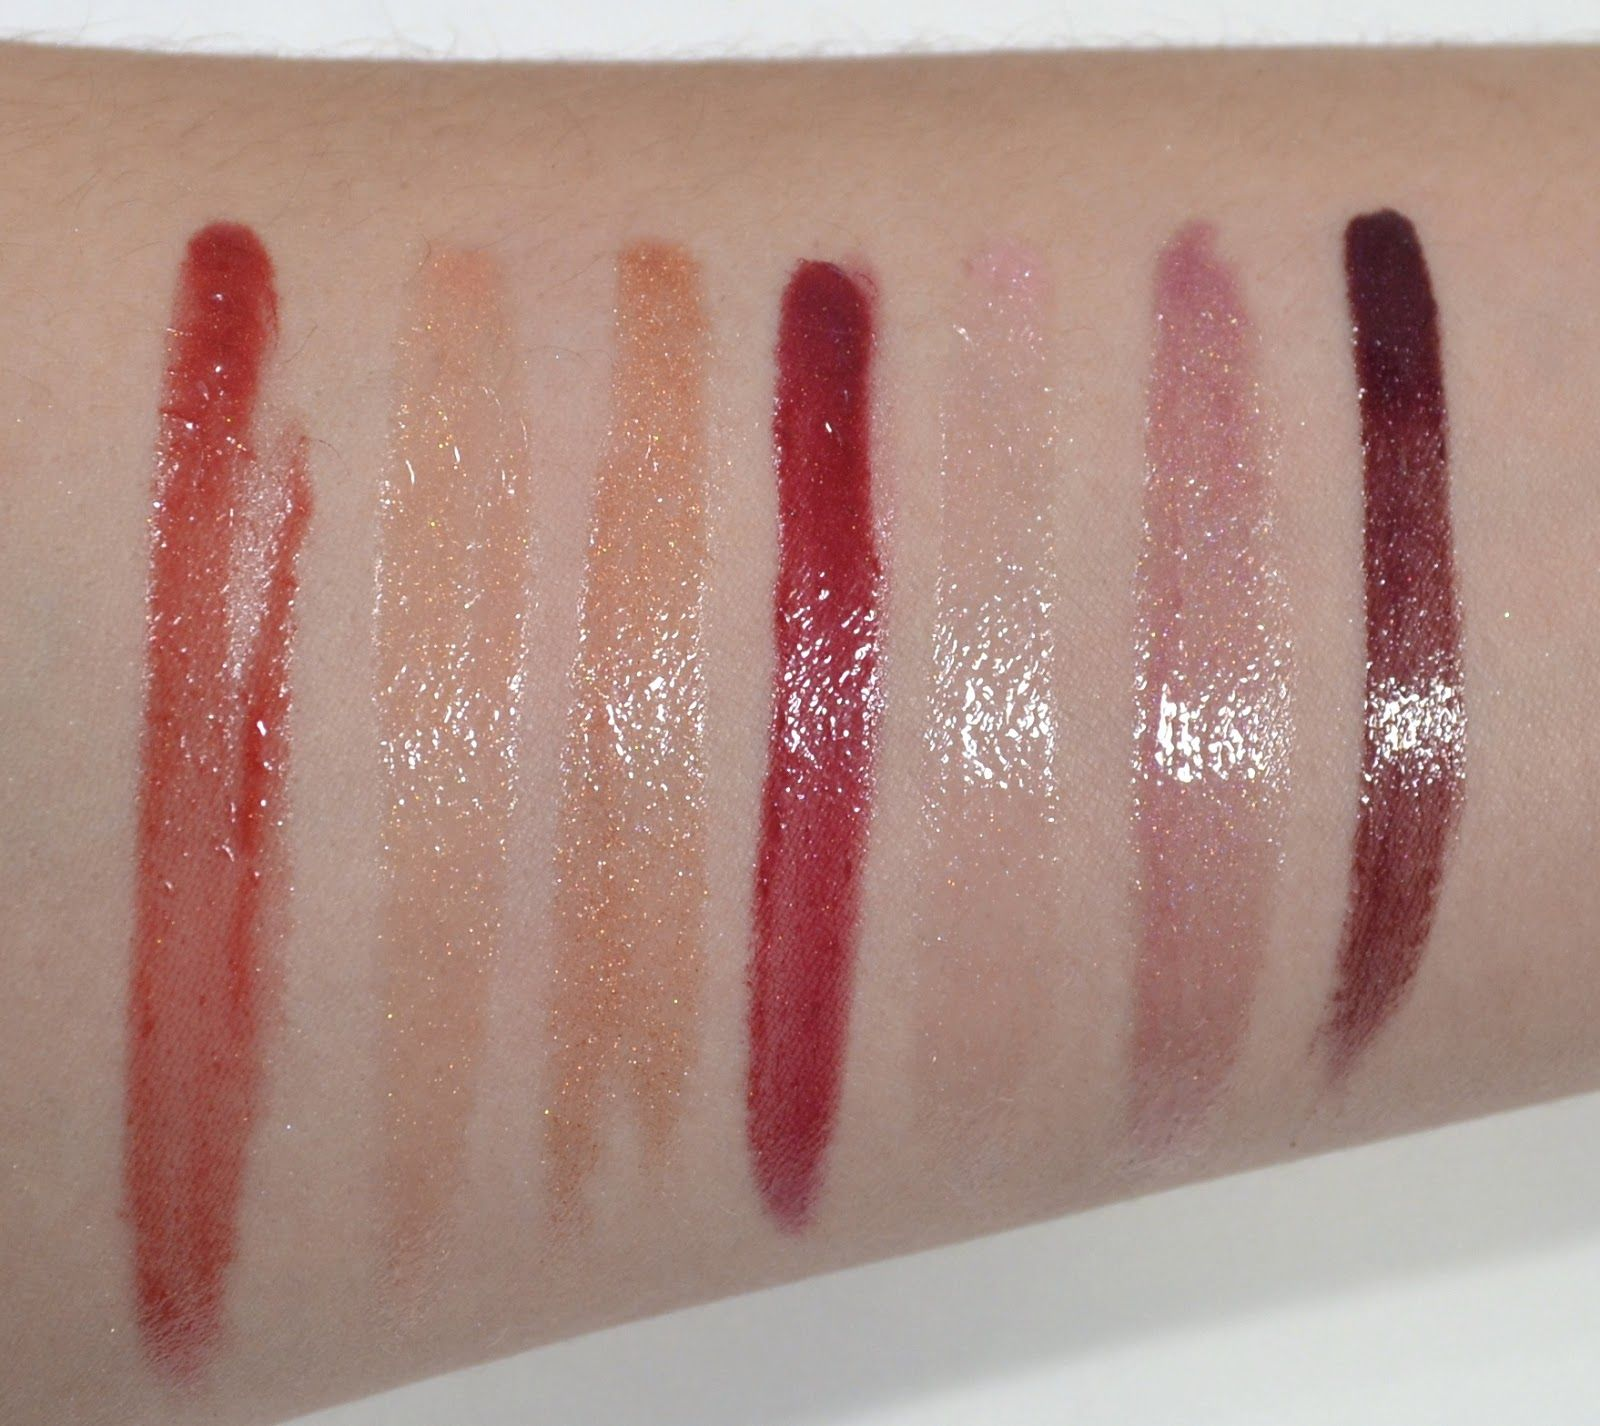 Burt S Bees 100 Natural Lip Glosses Swatches Evening